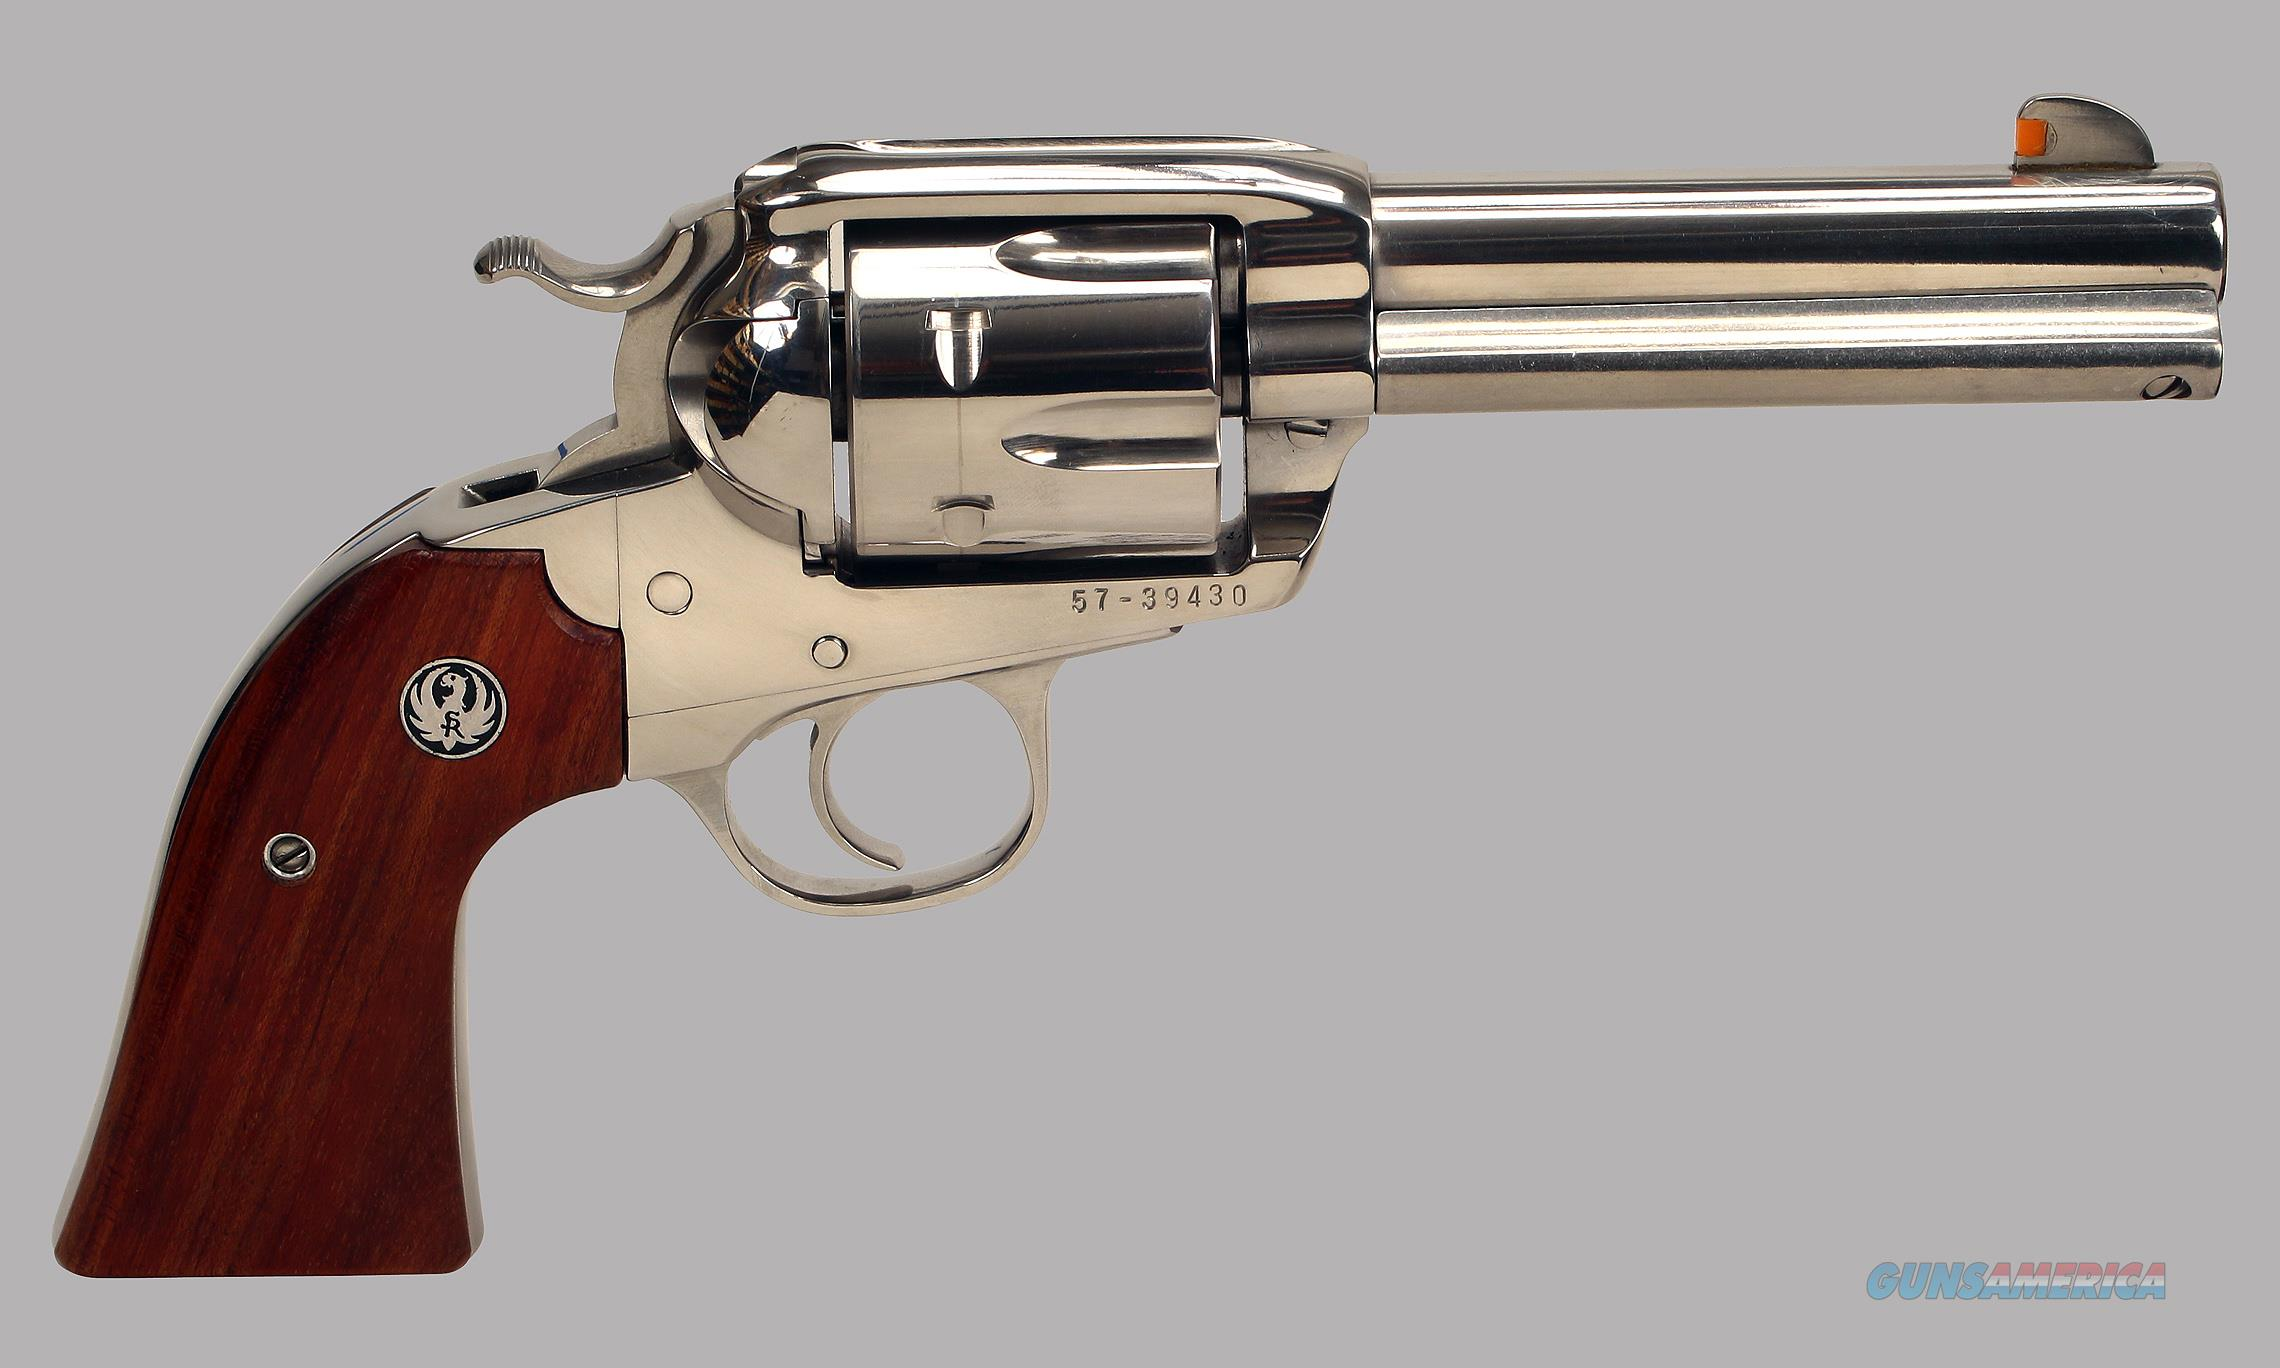 Ruger 45LC Vaquero Bisley Revolver  Guns > Pistols > Ruger Single Action Revolvers > Blackhawk Type